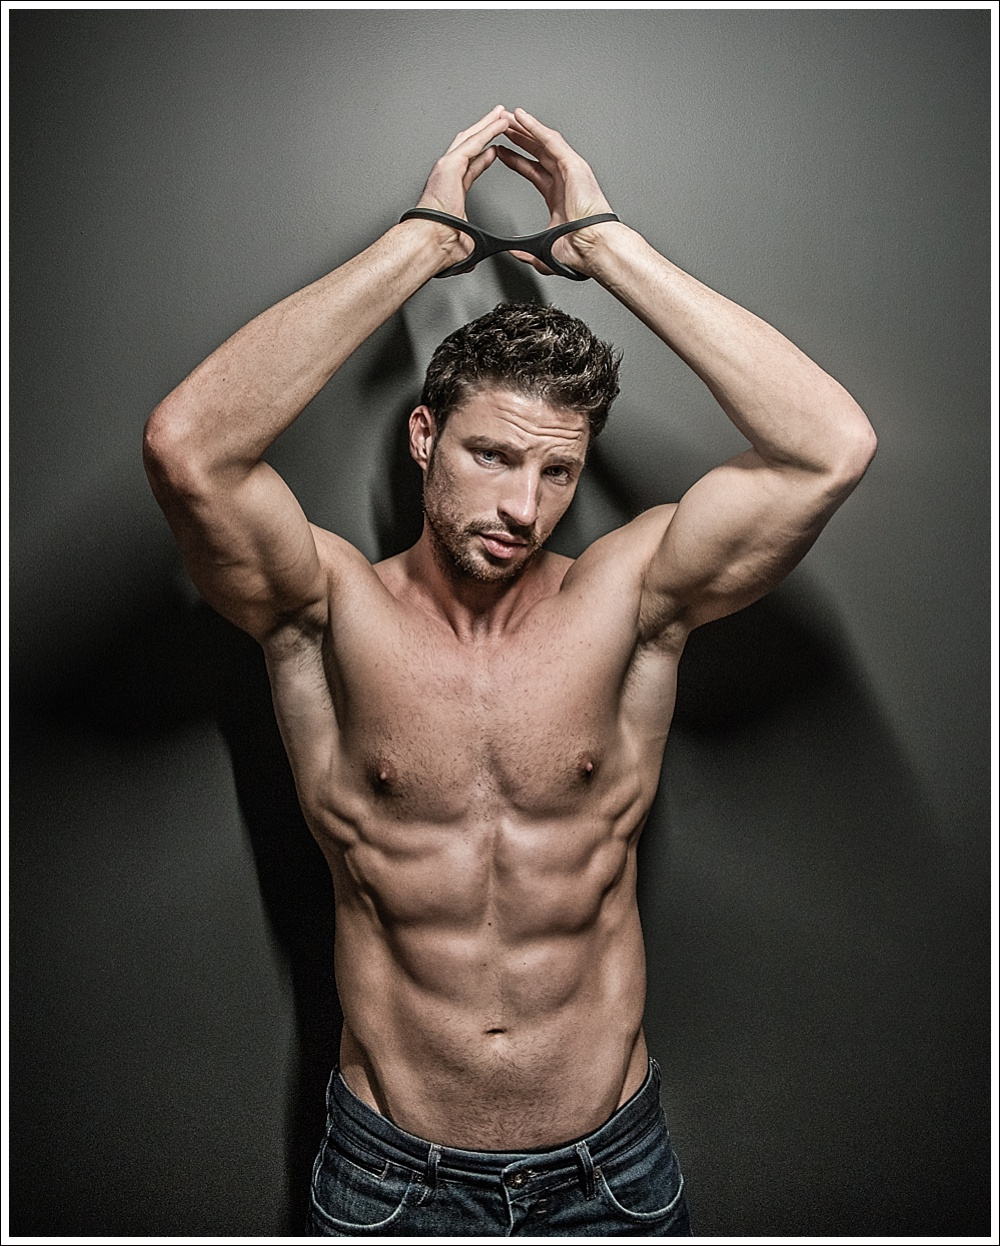 Topless male model in Quickie cuff handcuffs